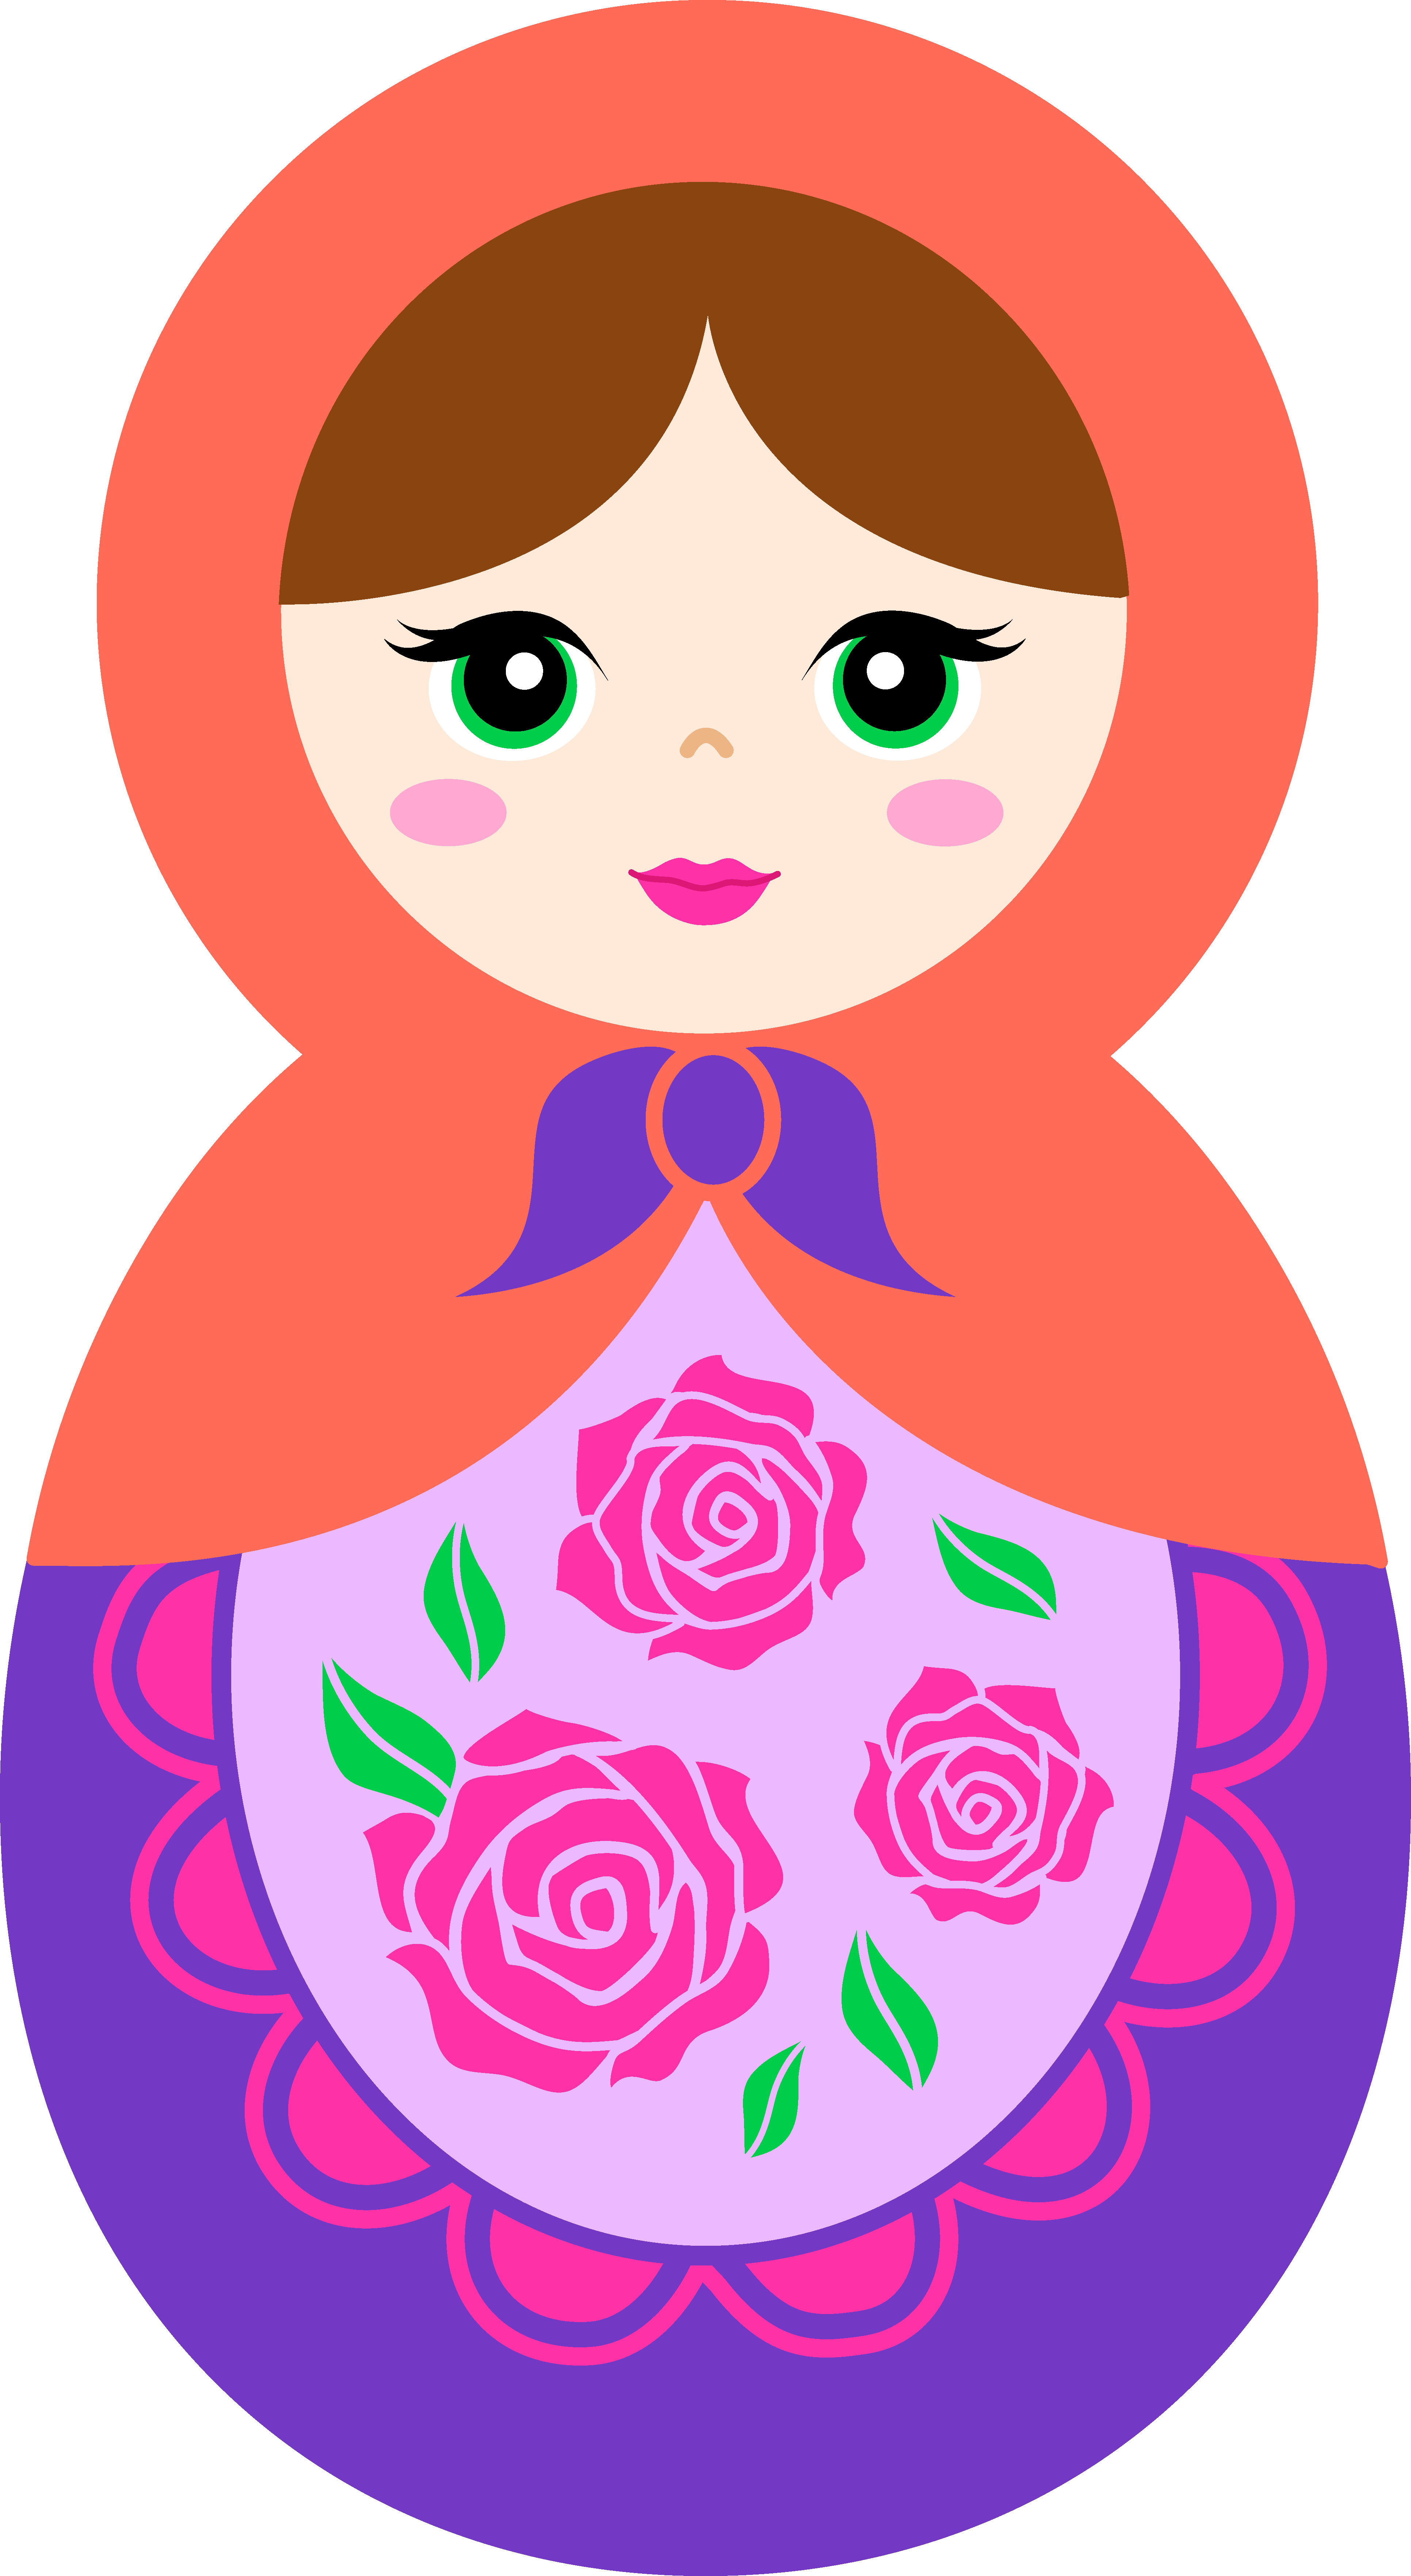 image library stock Doll clipart. Stacking